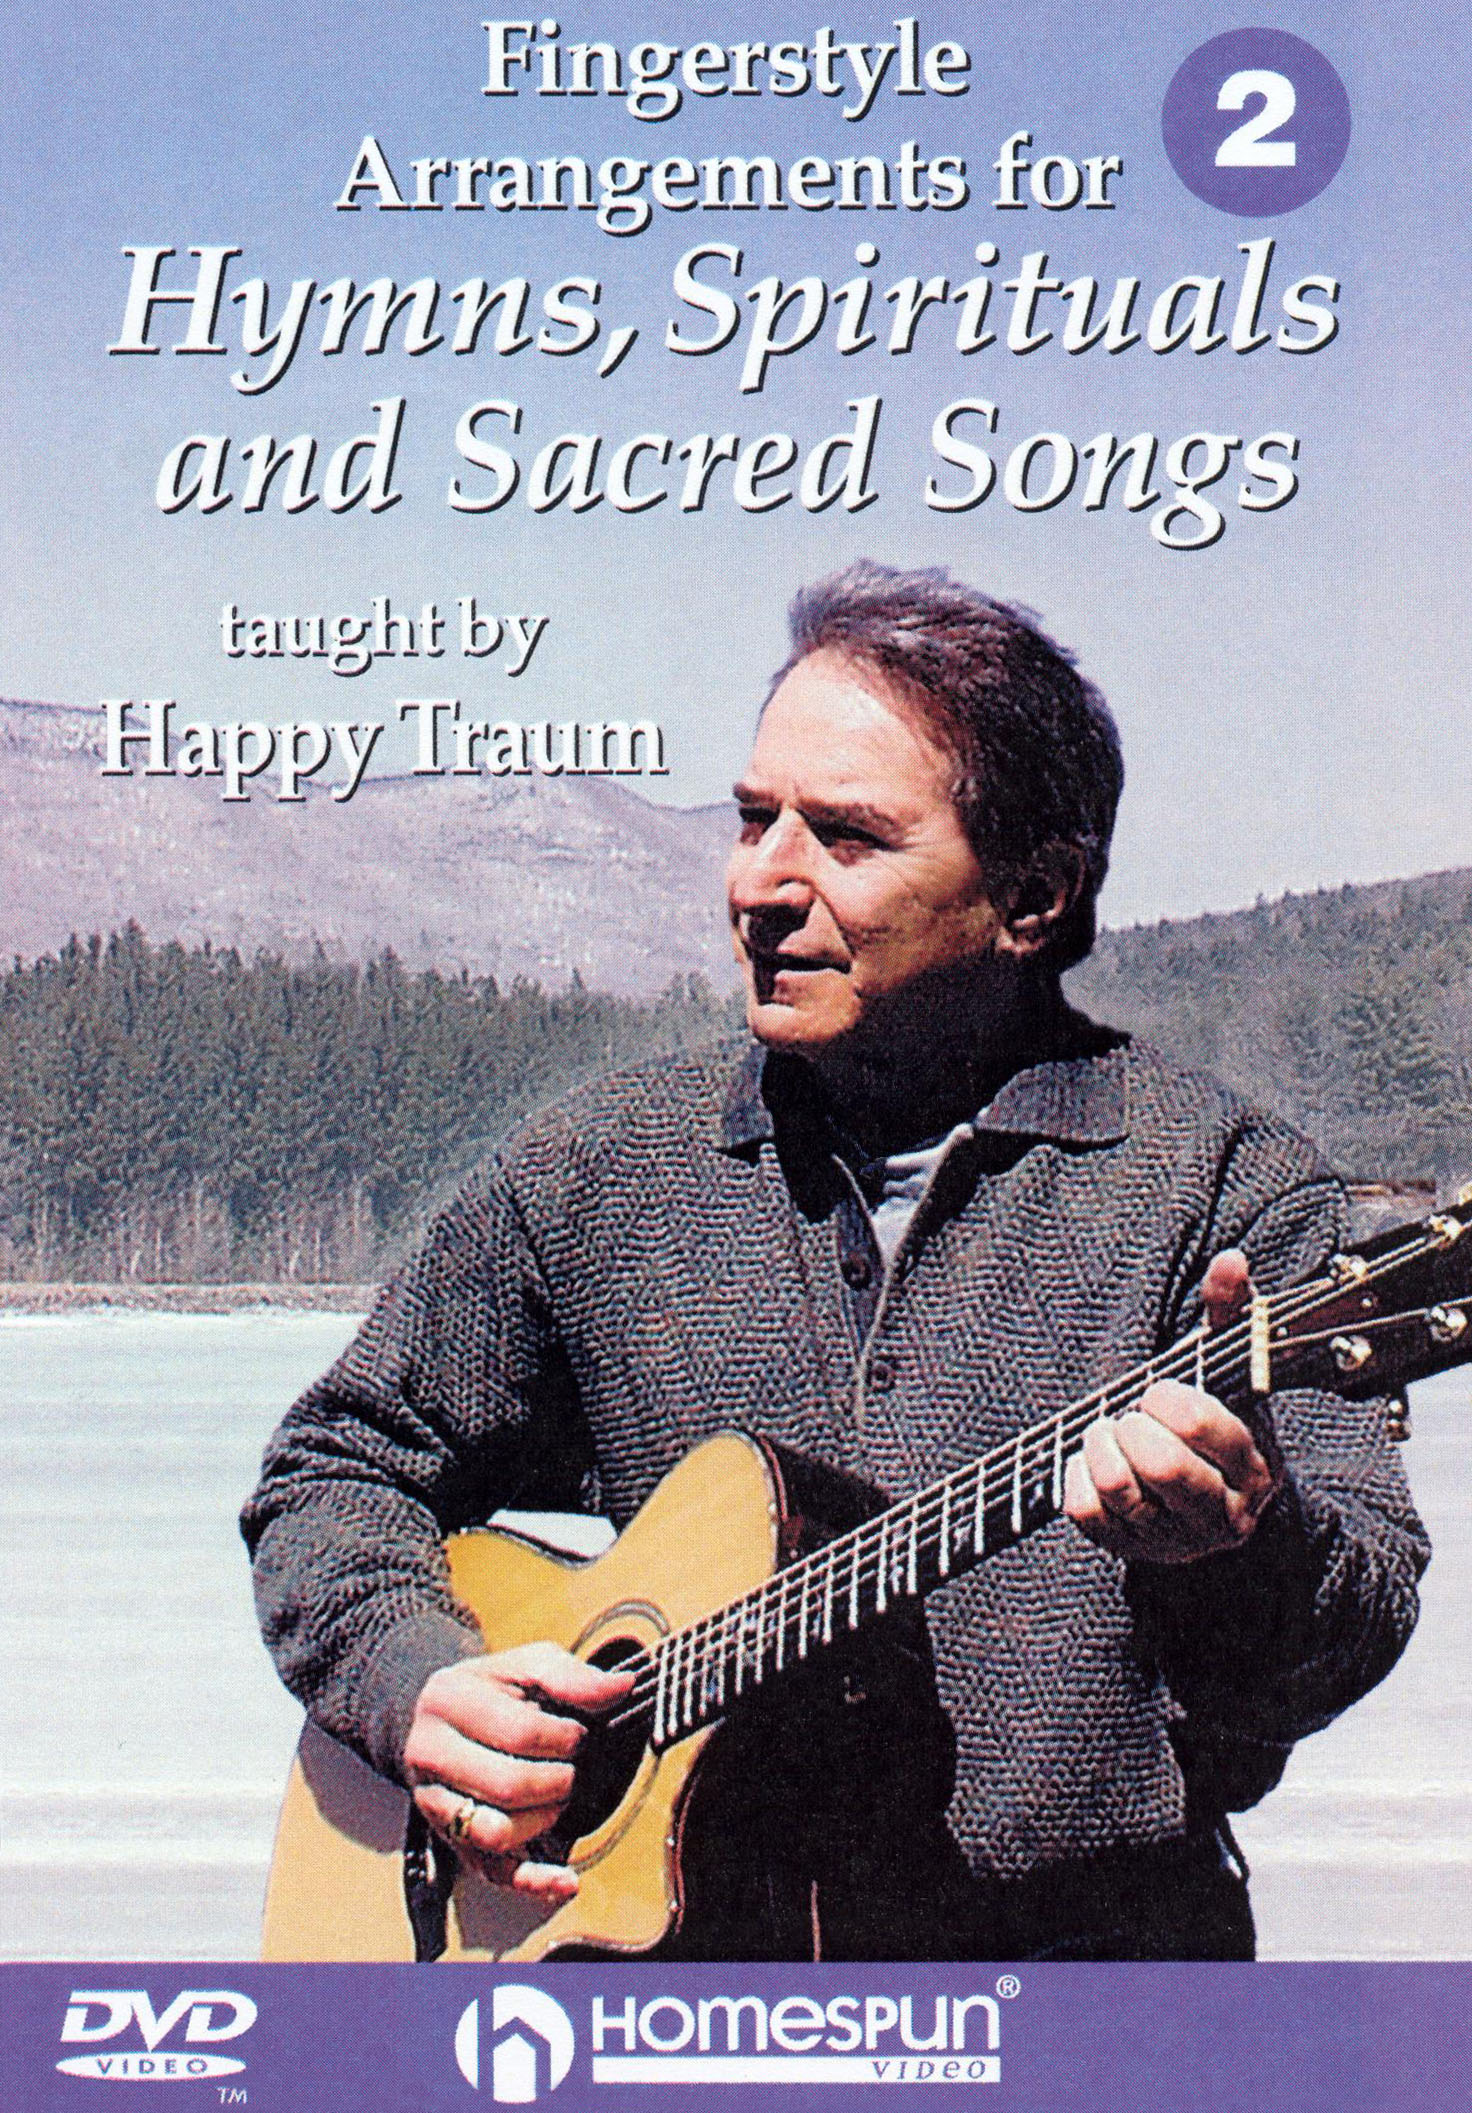 Happy Traum: Fingerstyle Arrangements for Hymns, Spirituals and Sacred Songs, Vol. 2